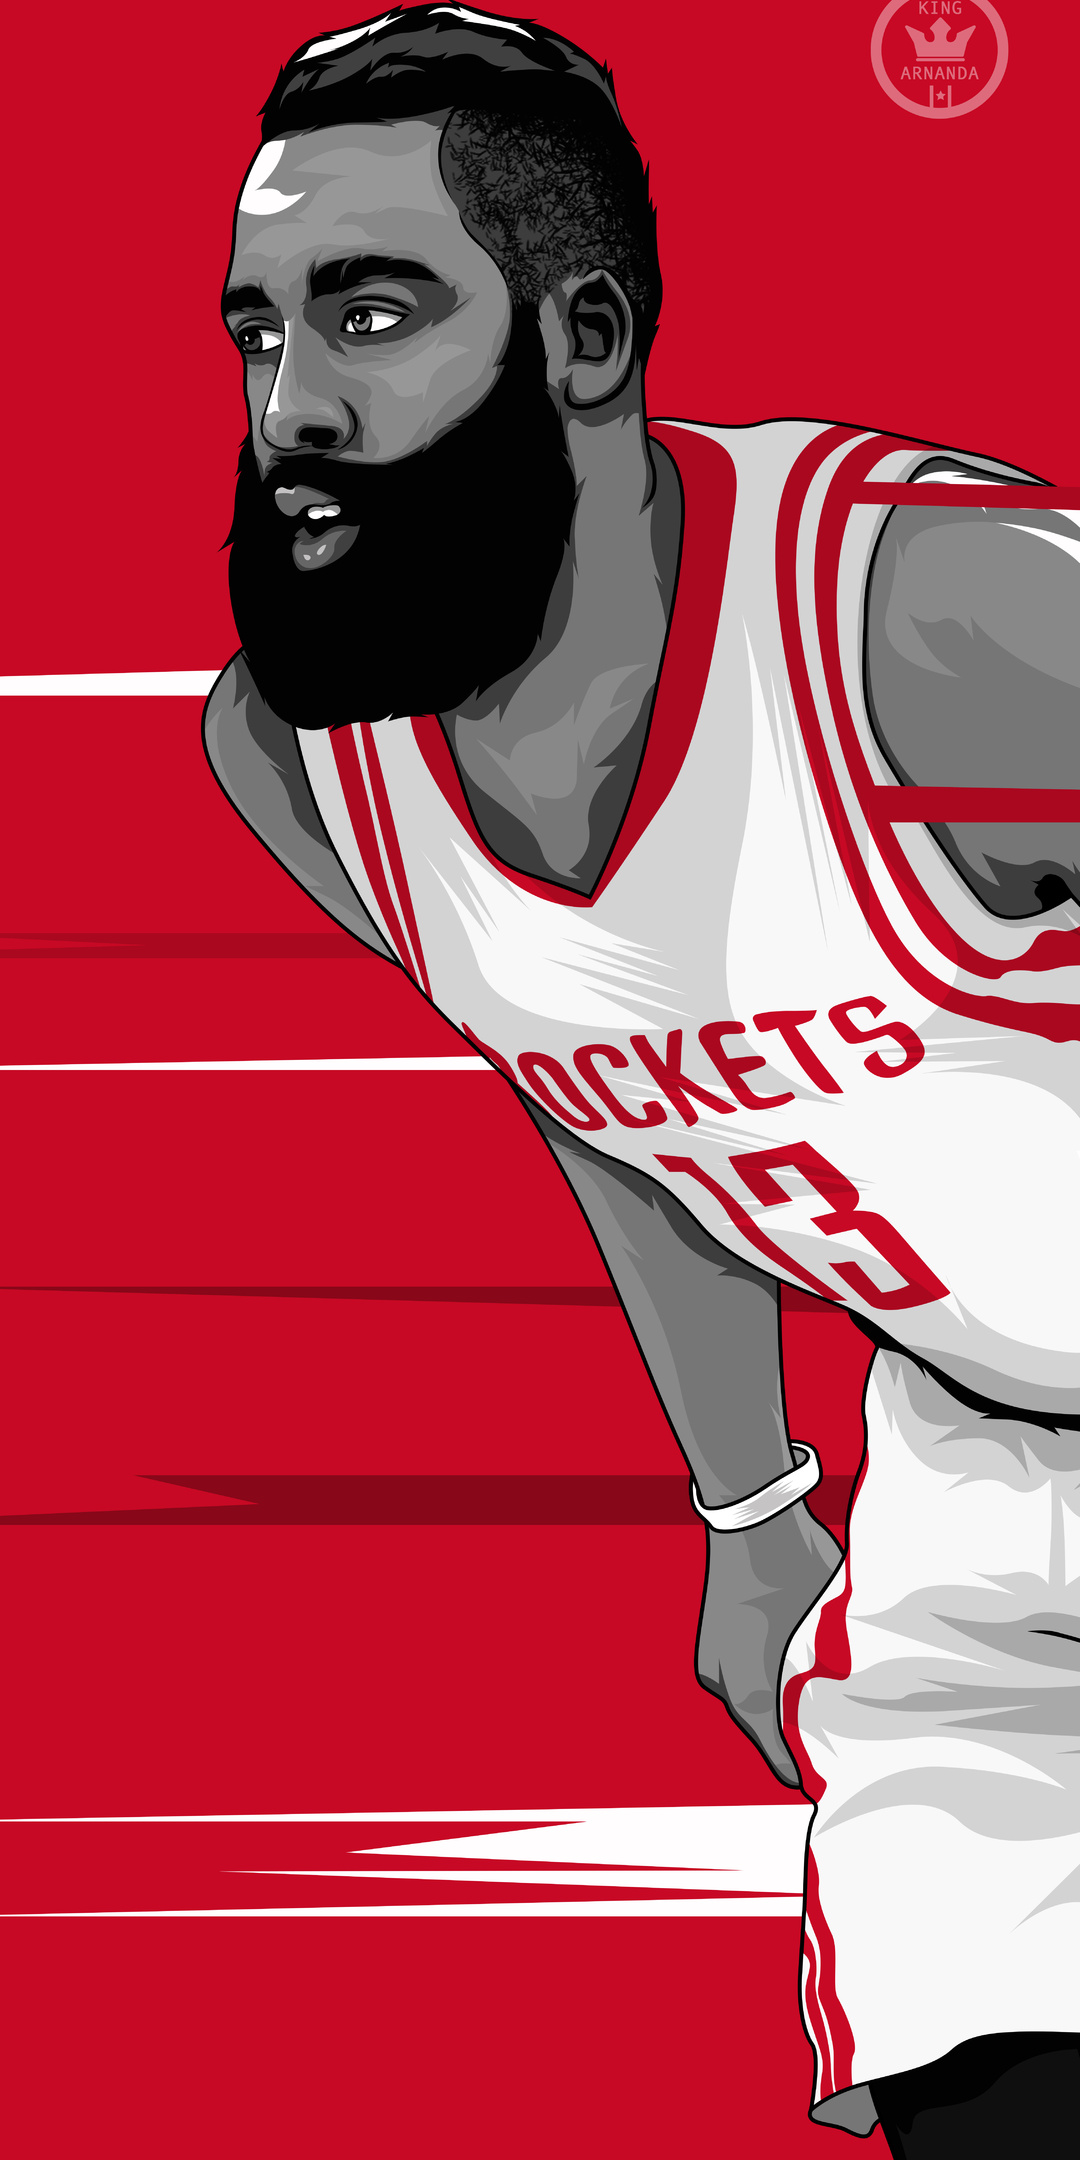 a83176a67f5 1080x2160 James Harden Artwork One Plus 5T